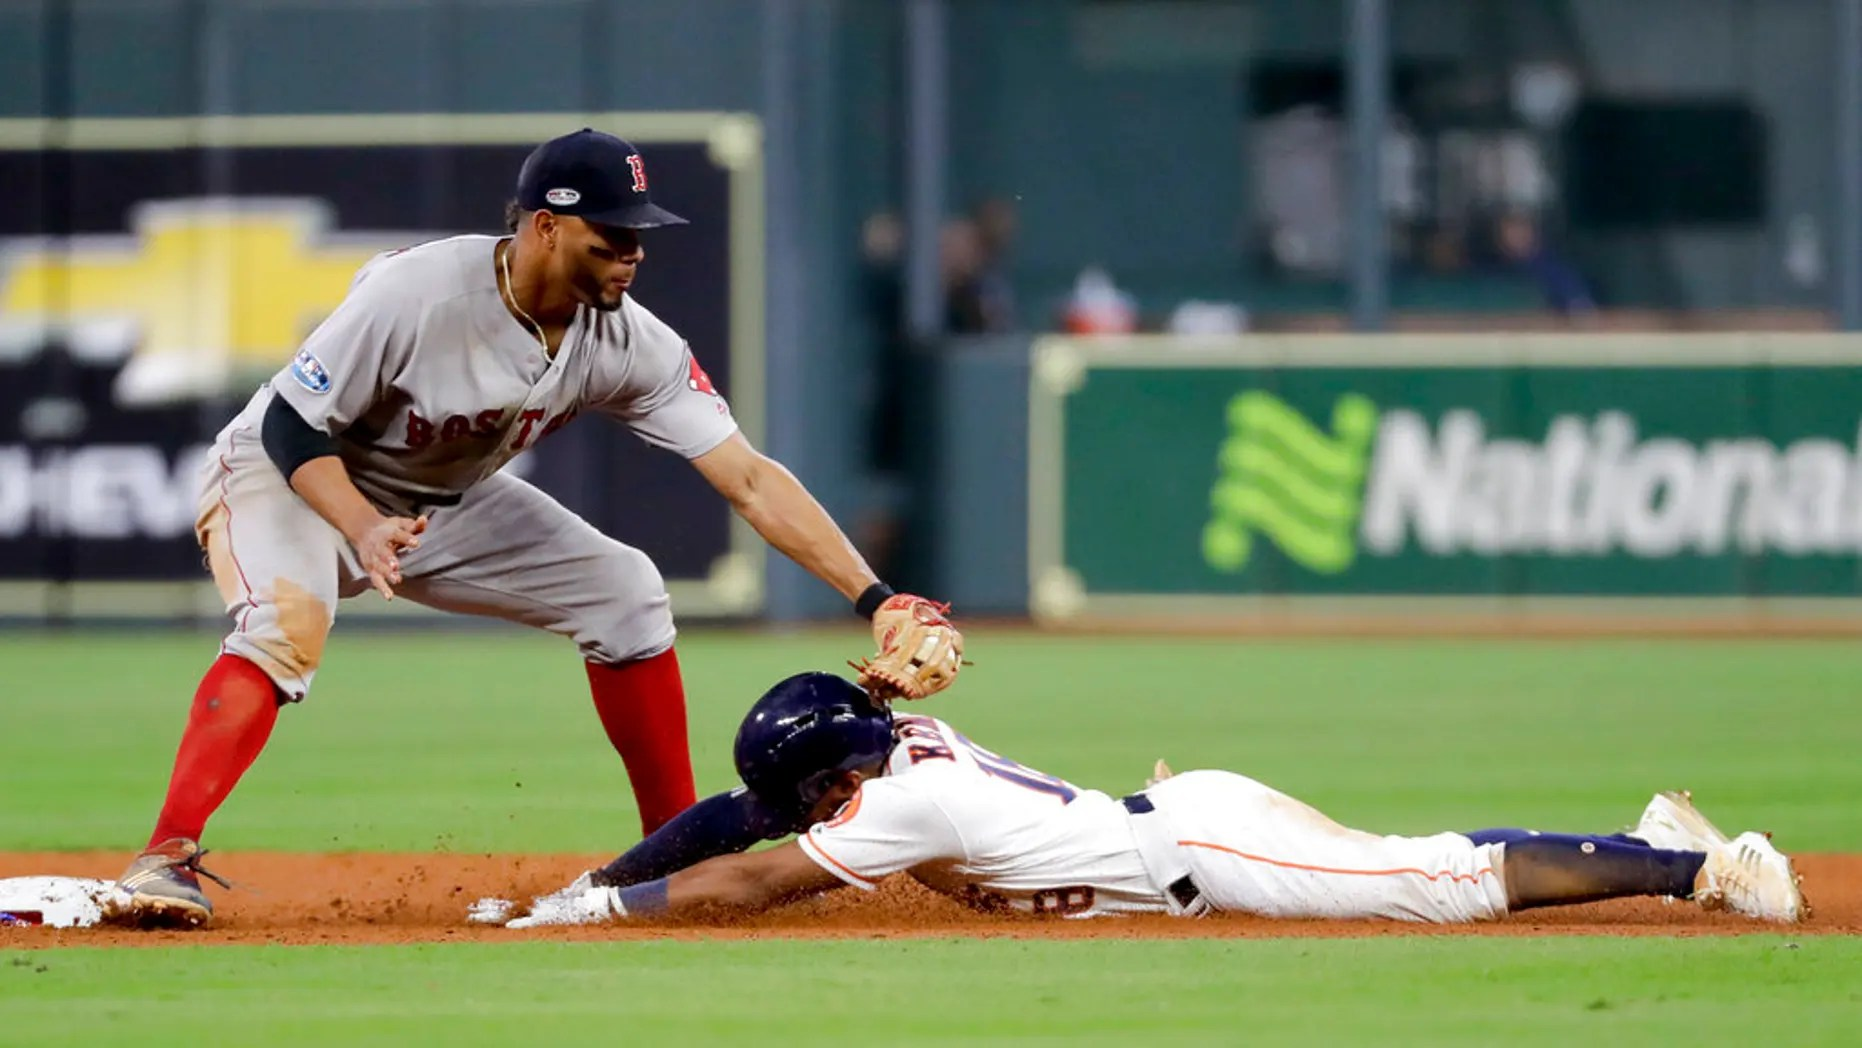 FILE: Houston Astros' Tony Kemp is tagged out at second by Boston Red Sox shortstop Xander Bogaerts during the eighth inning in Game 4 of a baseball American League Championship Series.